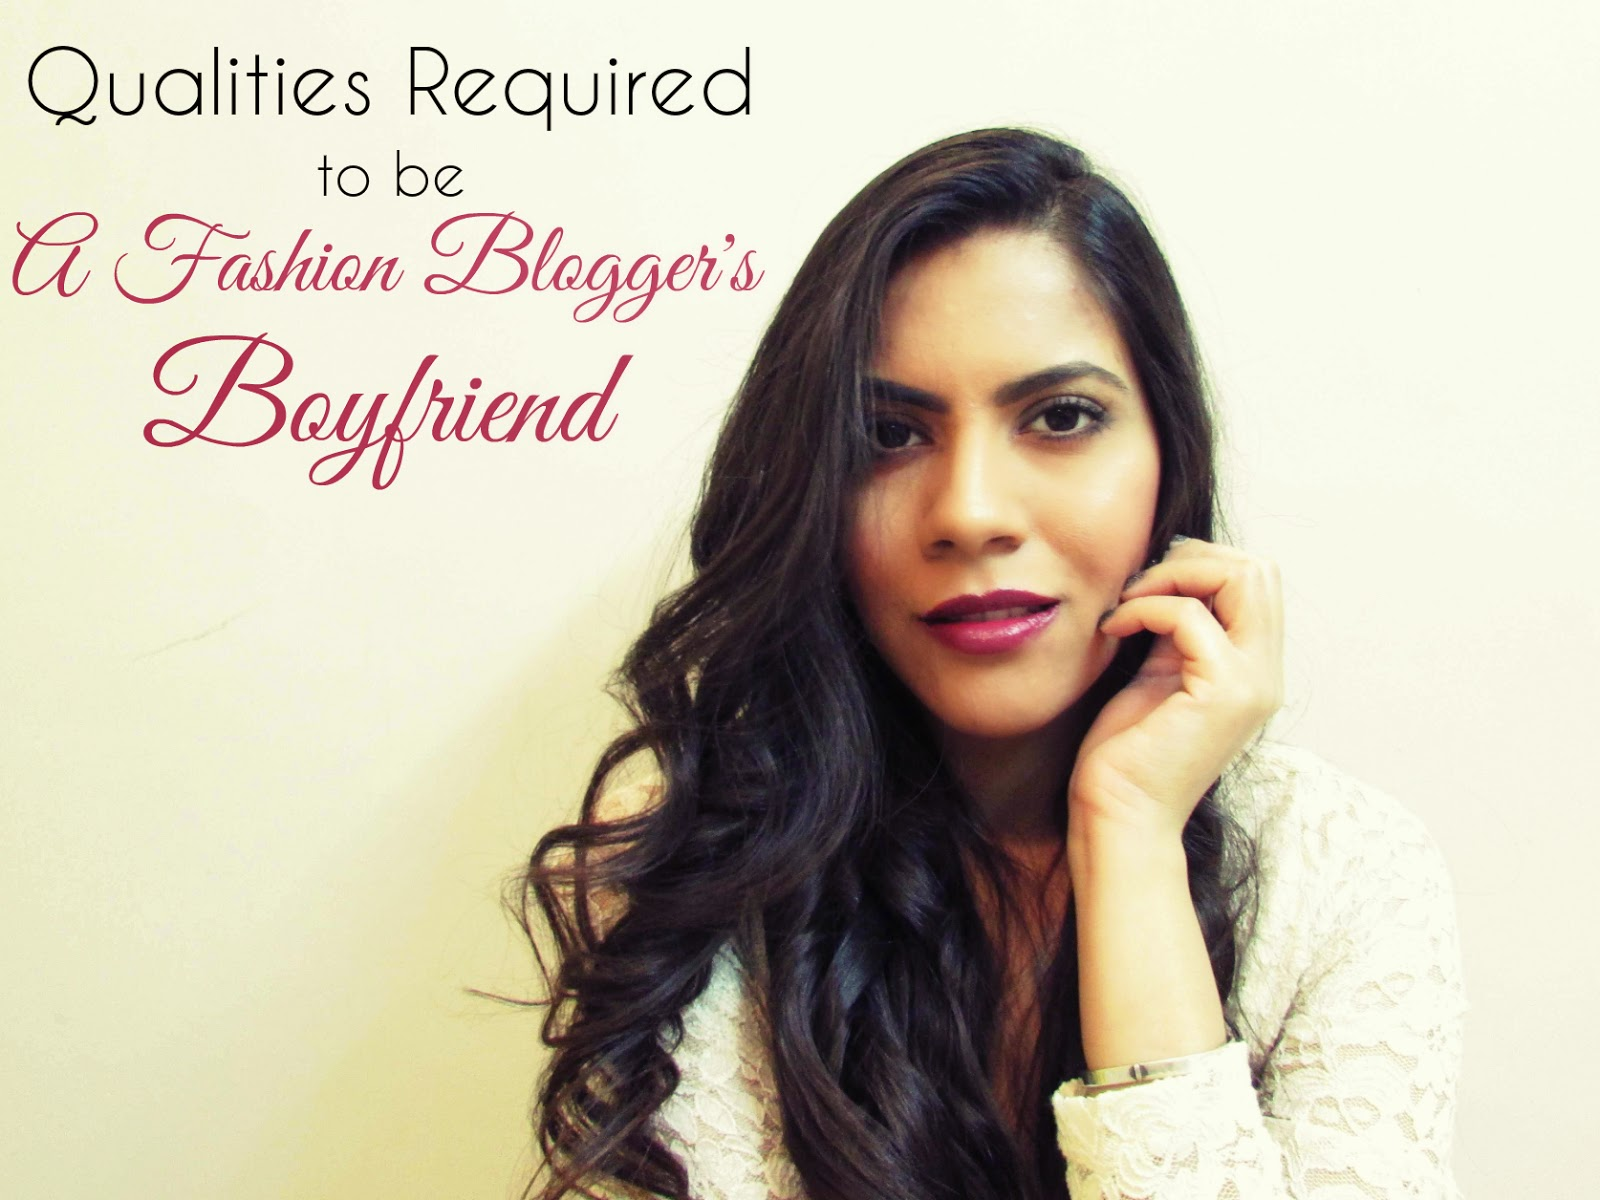 fashion blogger, fashion blogger boyfriend, qualities required to be a fashion bloggers boyfriend, qualities of a good boyfriend, indian fashion blogger, indian beauty blogger, indian blogger